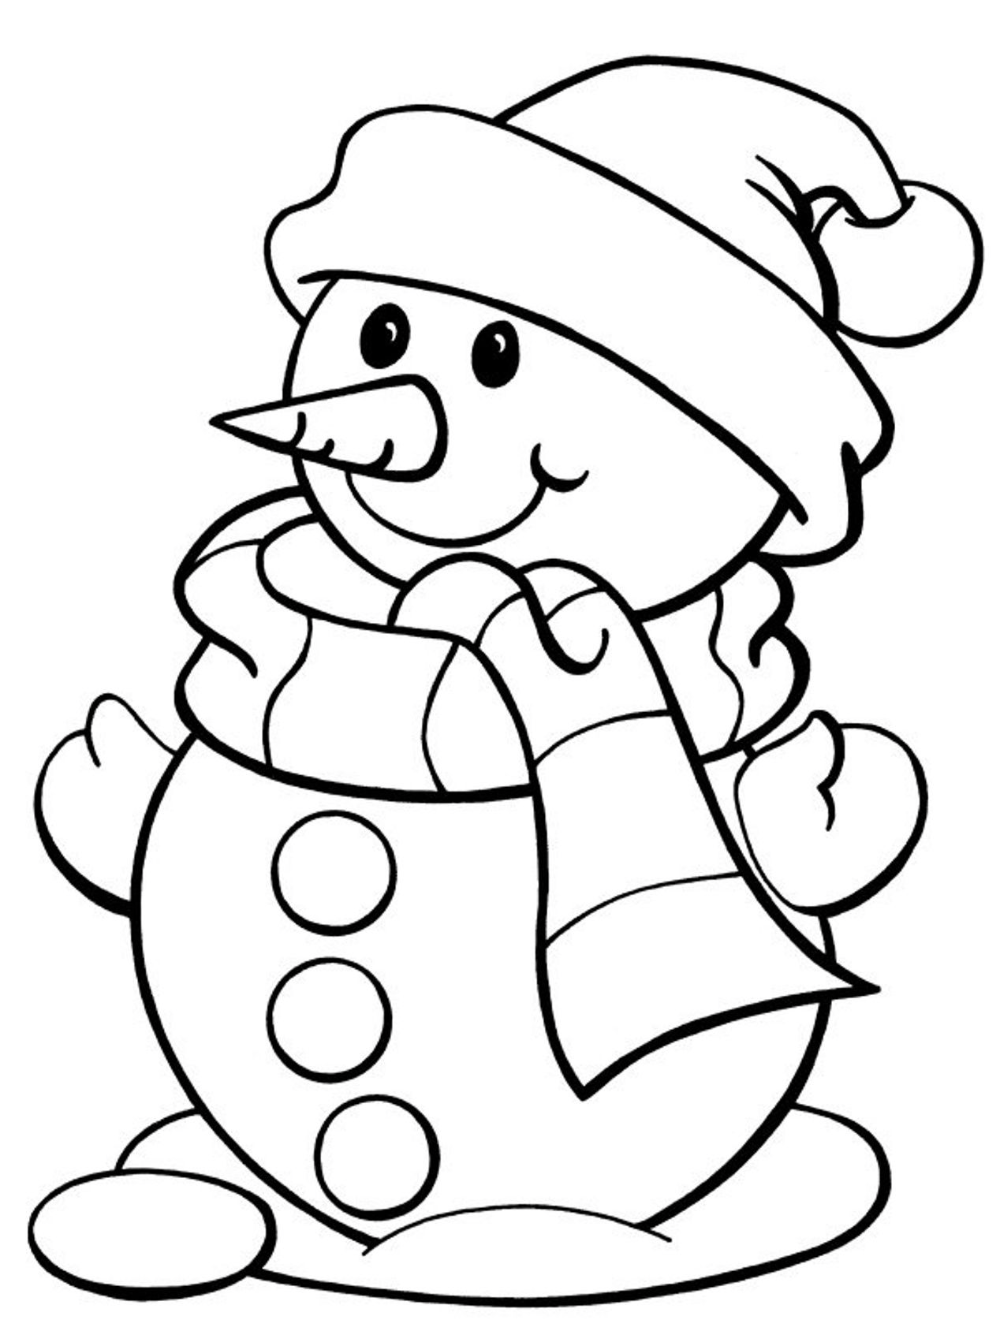 Free Printable Winter Coloring Pages For Kids Printable Christmas Coloring Pages Christmas Coloring Pages Snowman Coloring Pages